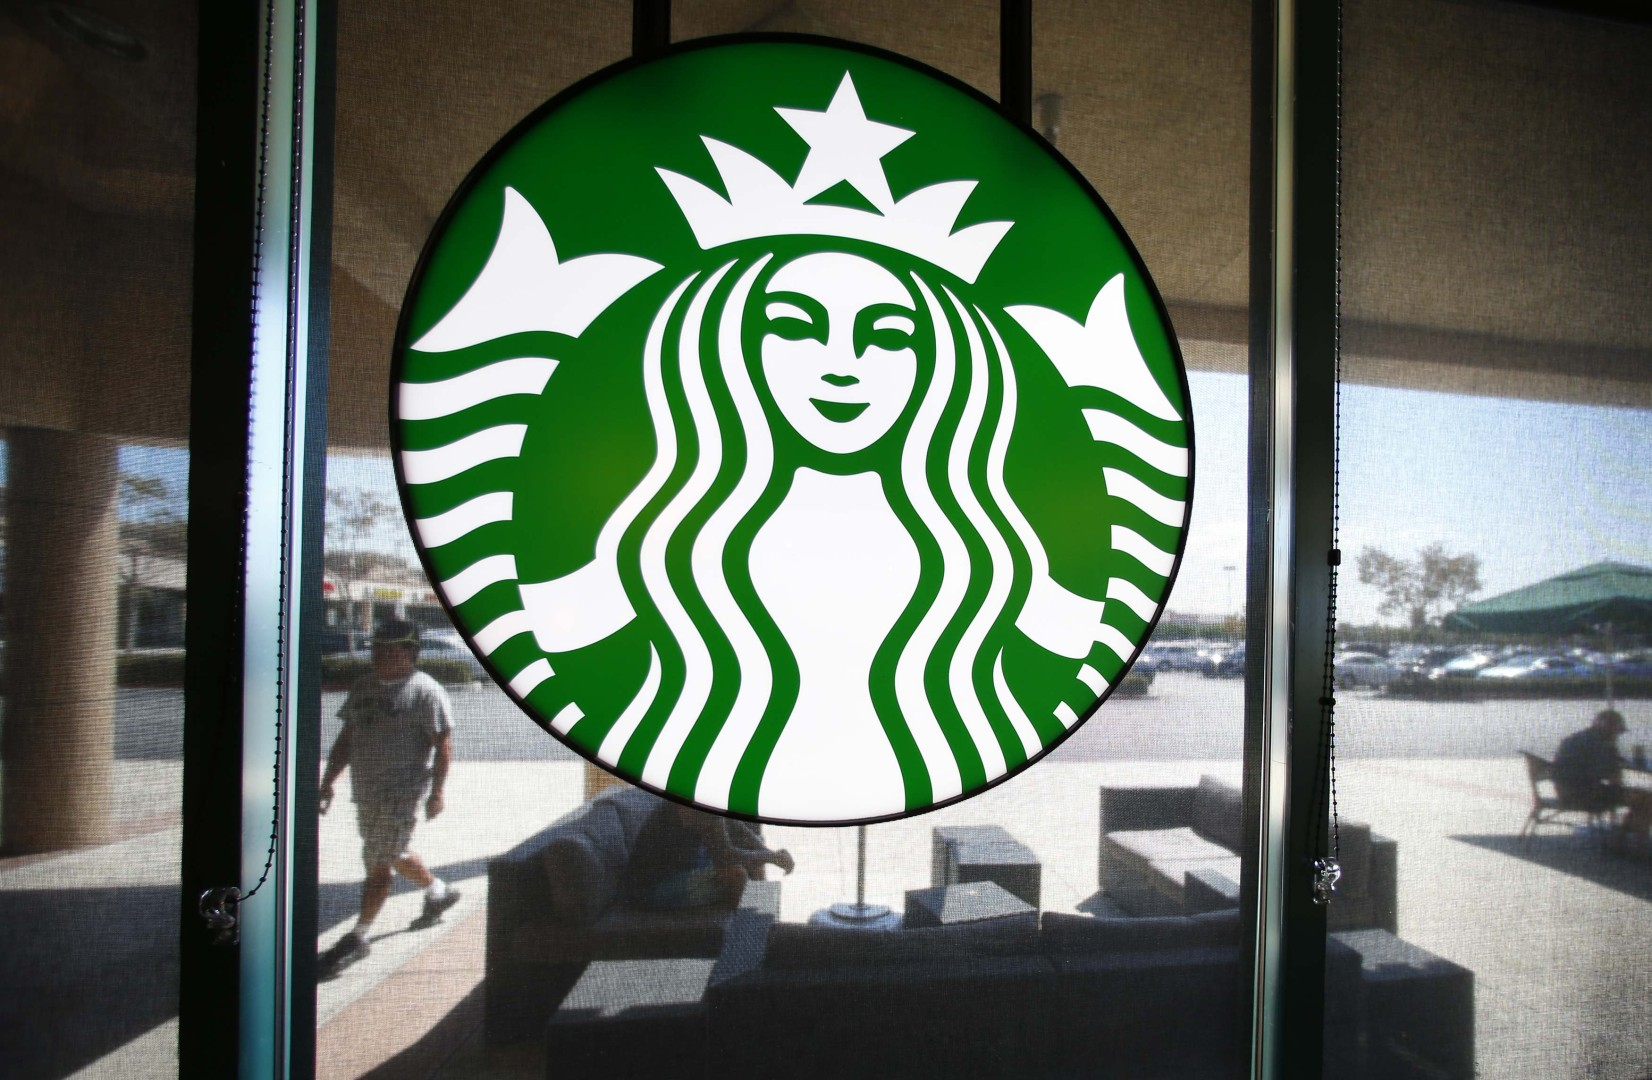 CCTV's criticism of Starbucks 'pricey coffee' prompts online ...